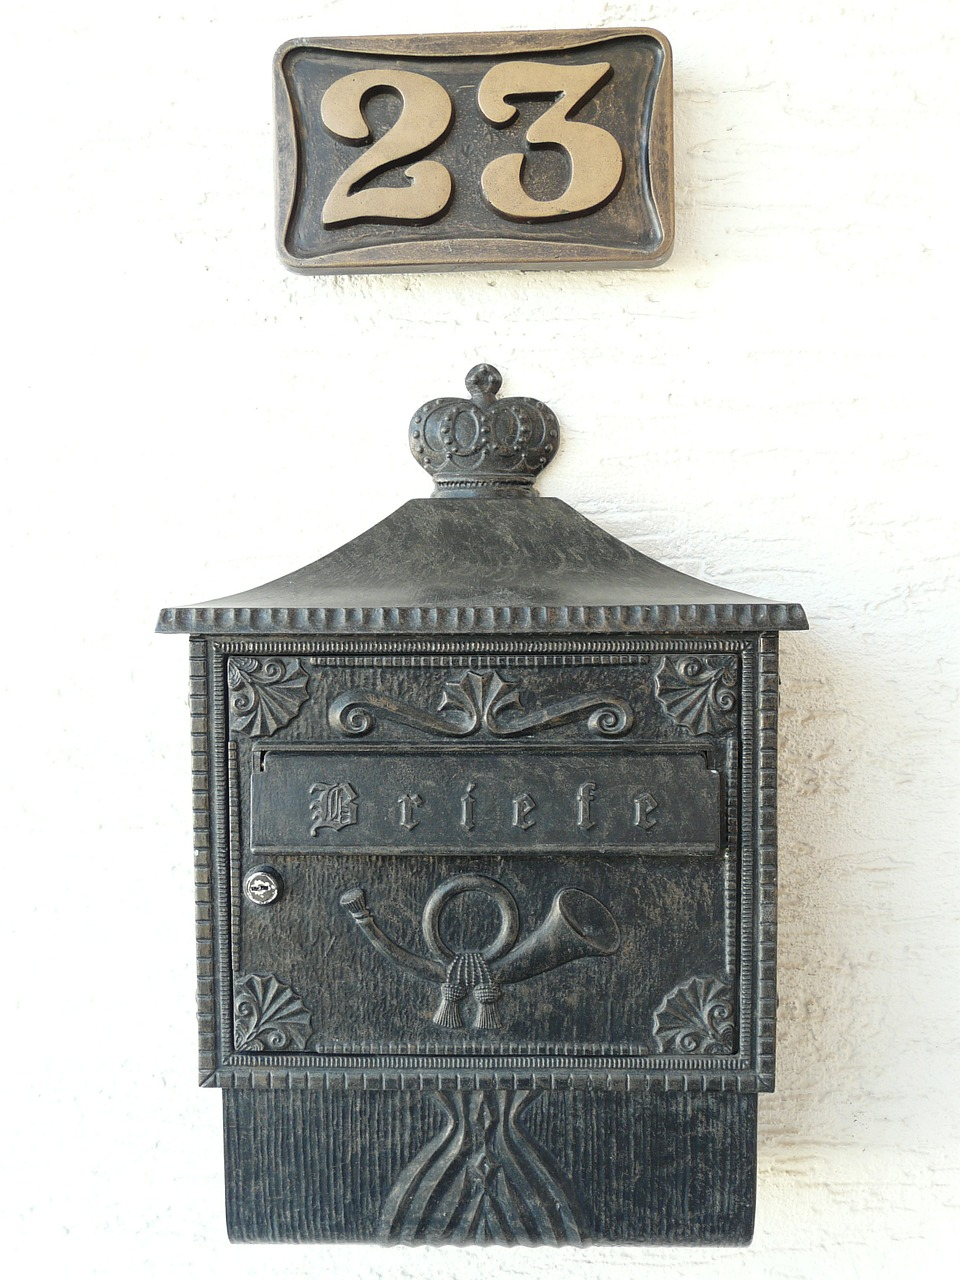 mailbox,house number,post,blacksmithing,metal,house entrance,letter boxes,free pictures, free photos, free images, royalty free, free illustrations, public domain